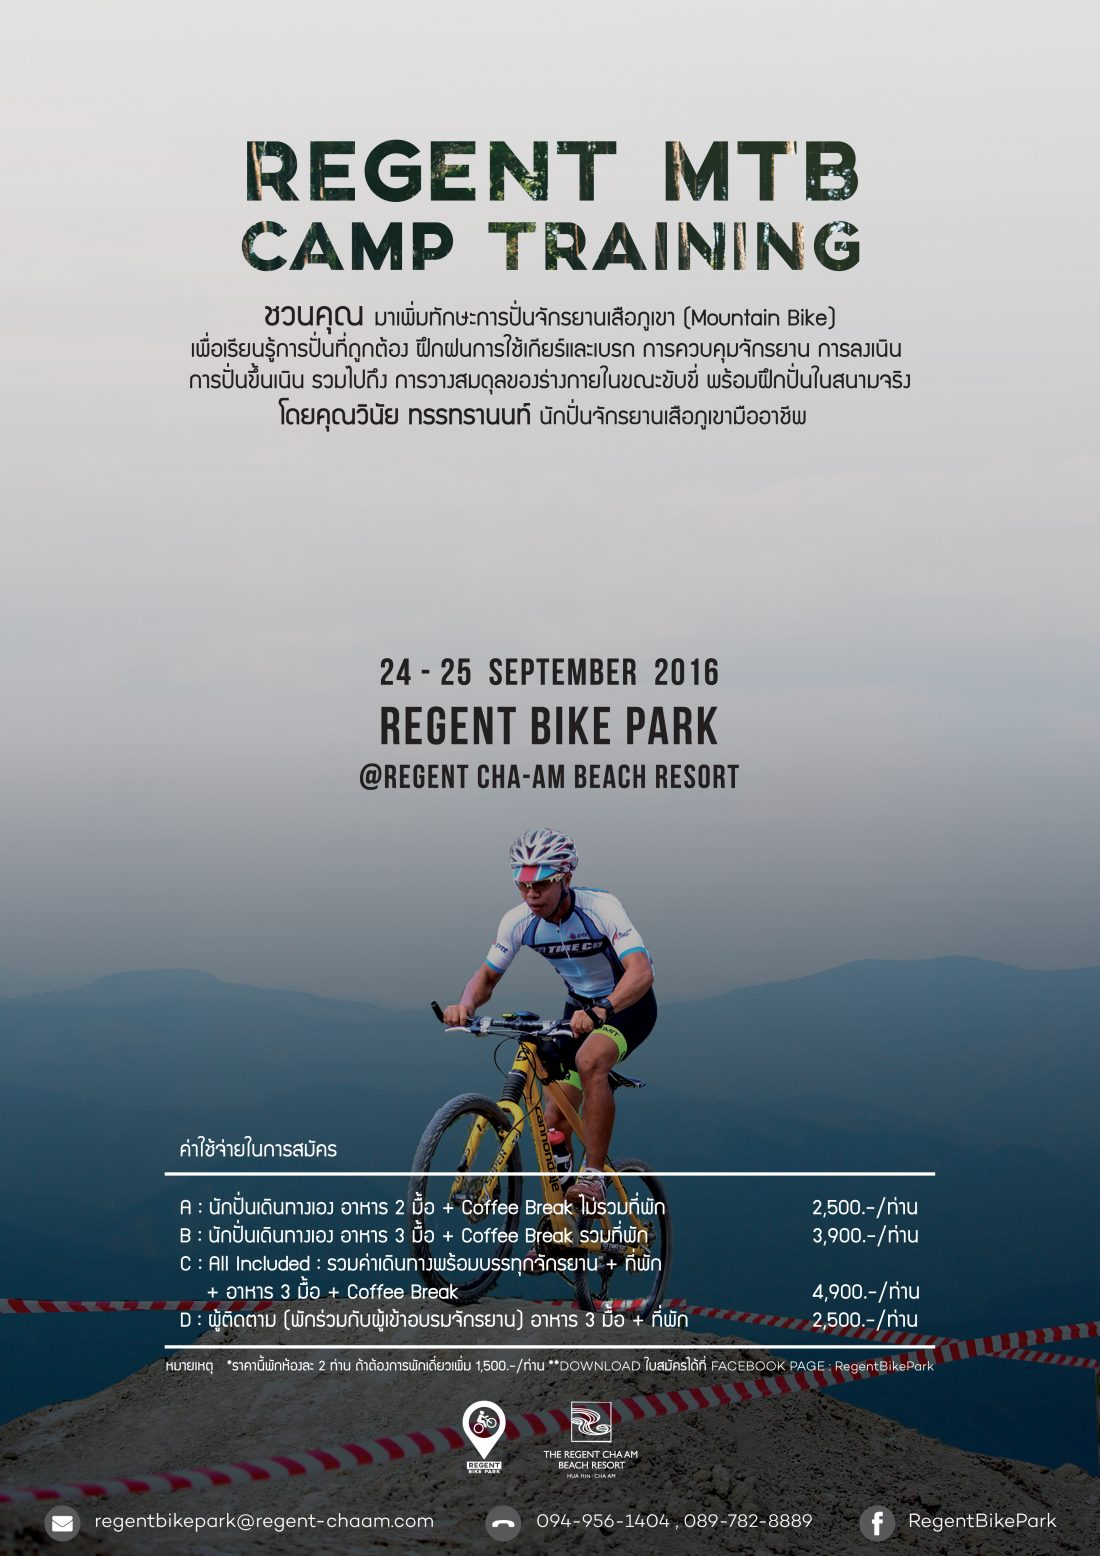 MTB Camp training